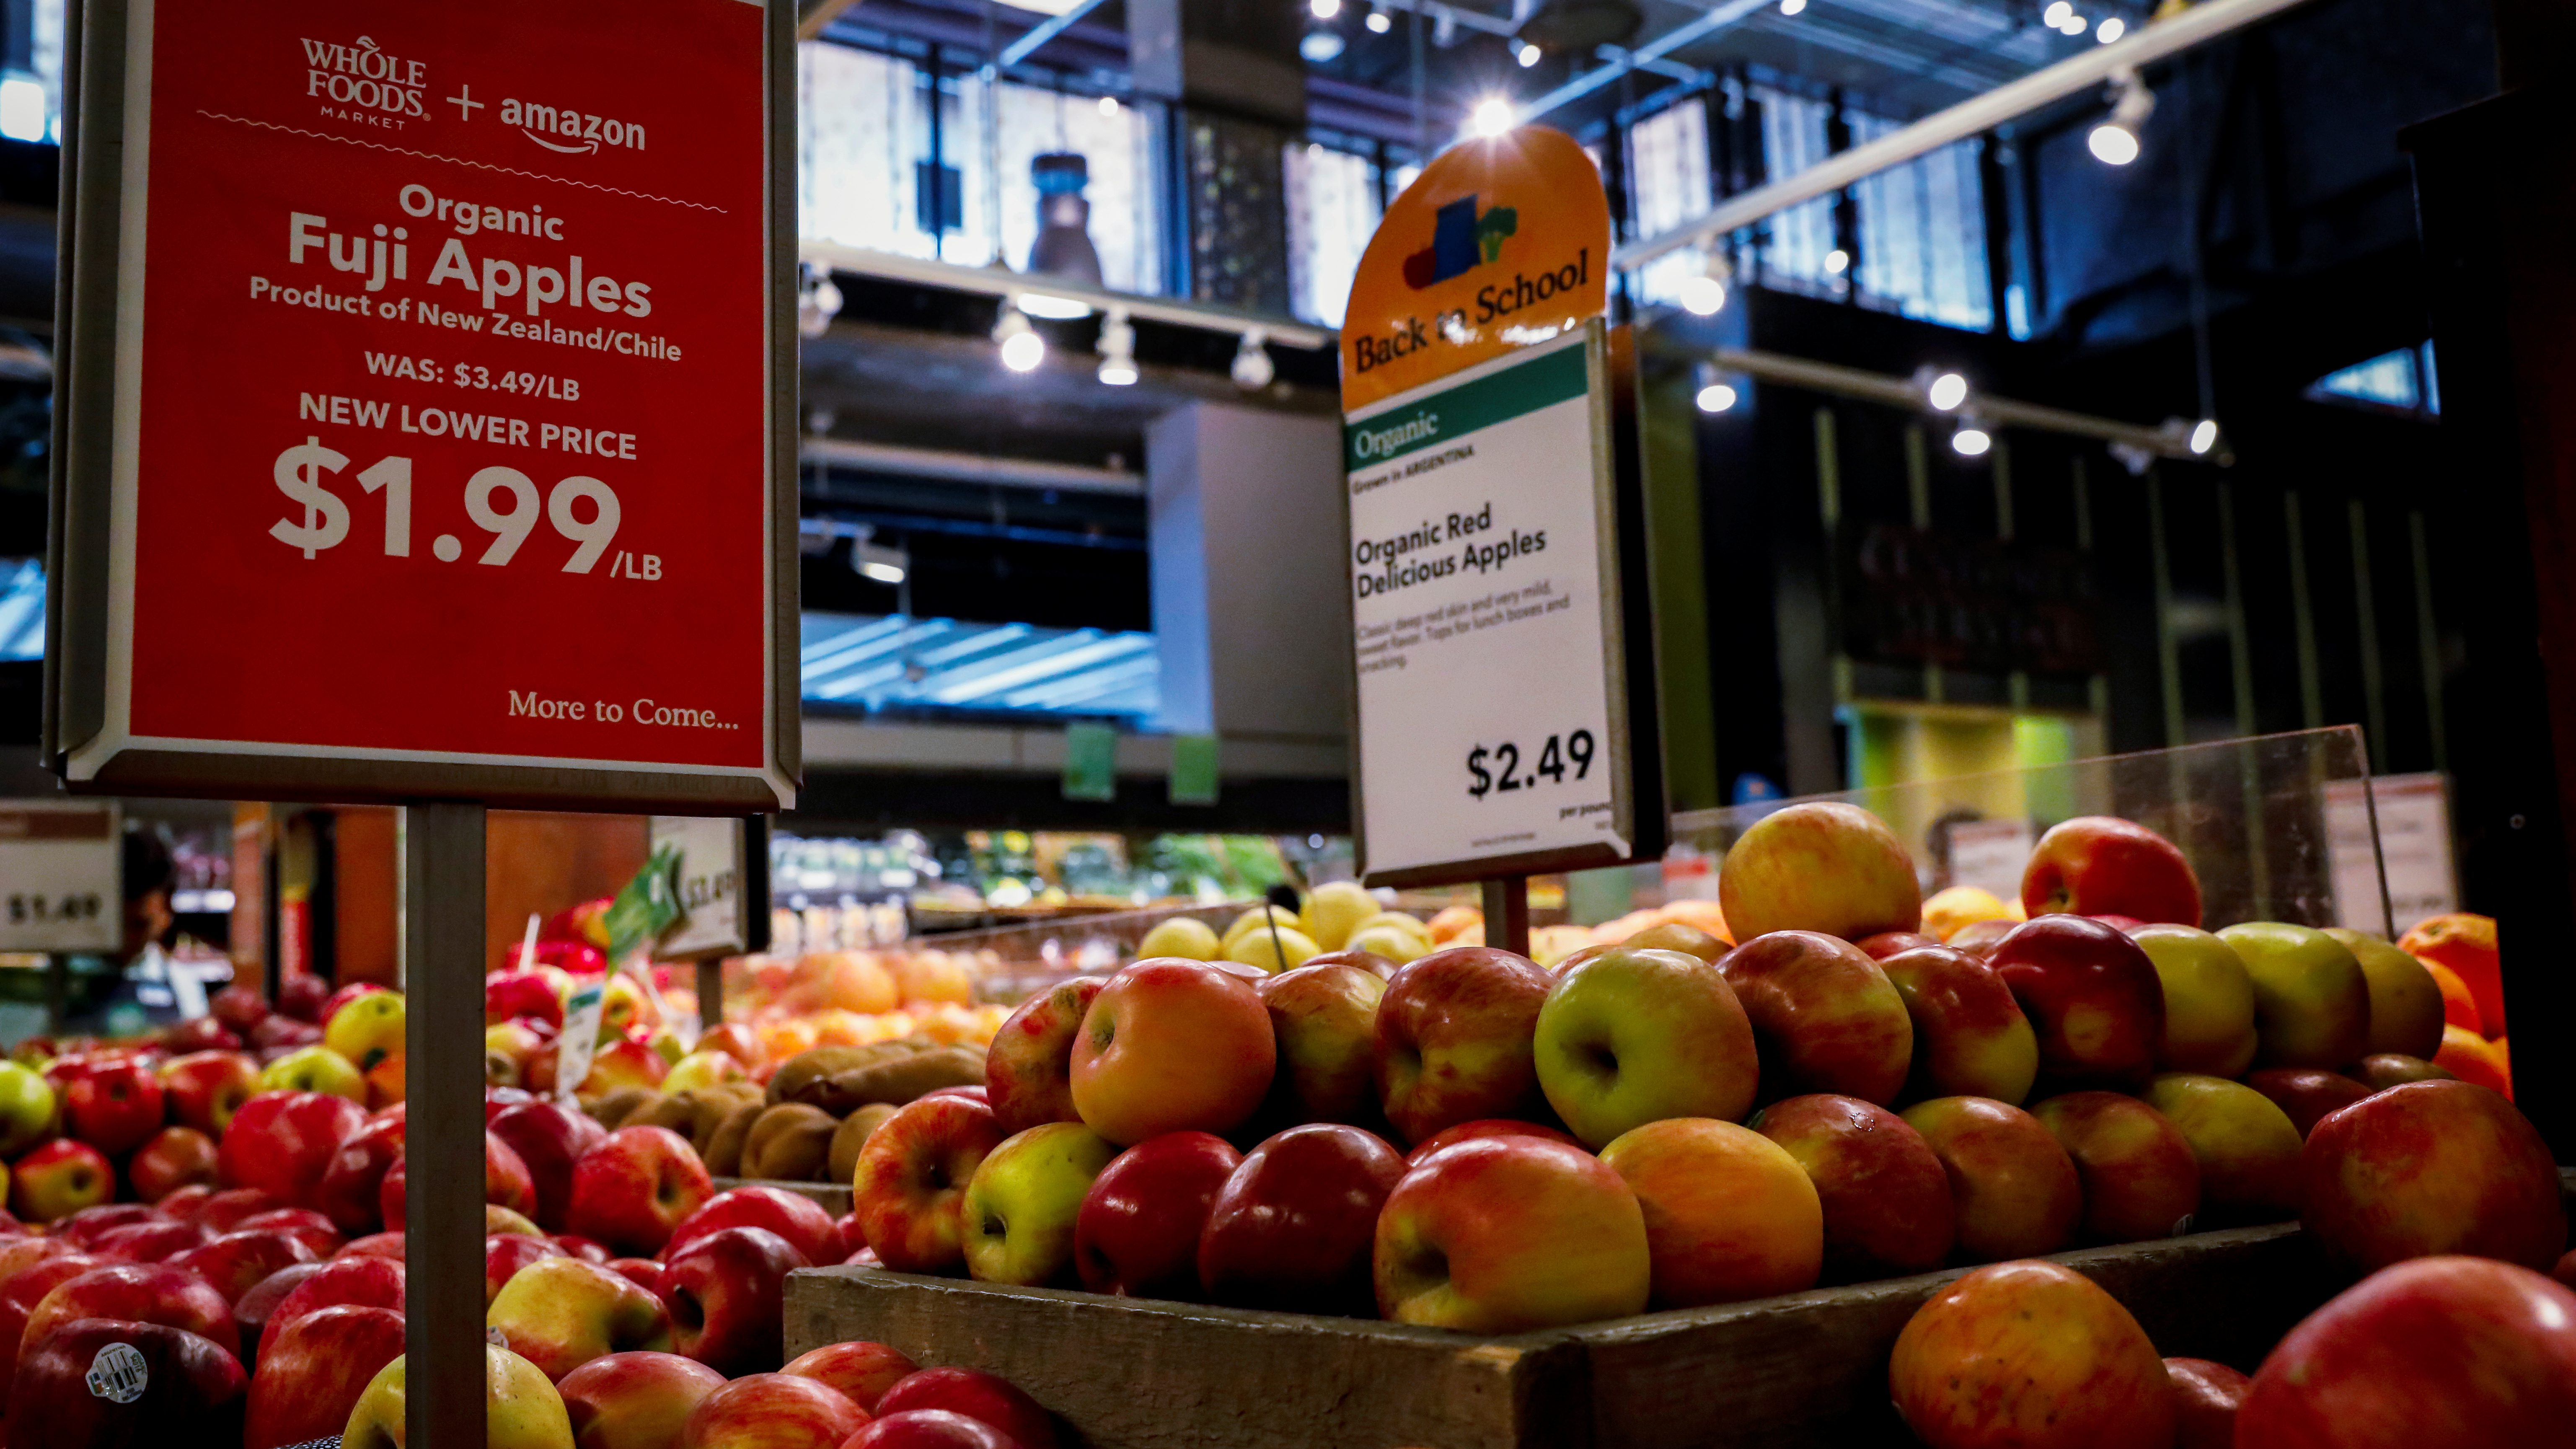 Apples are displayed at a Whole Foods store in New York